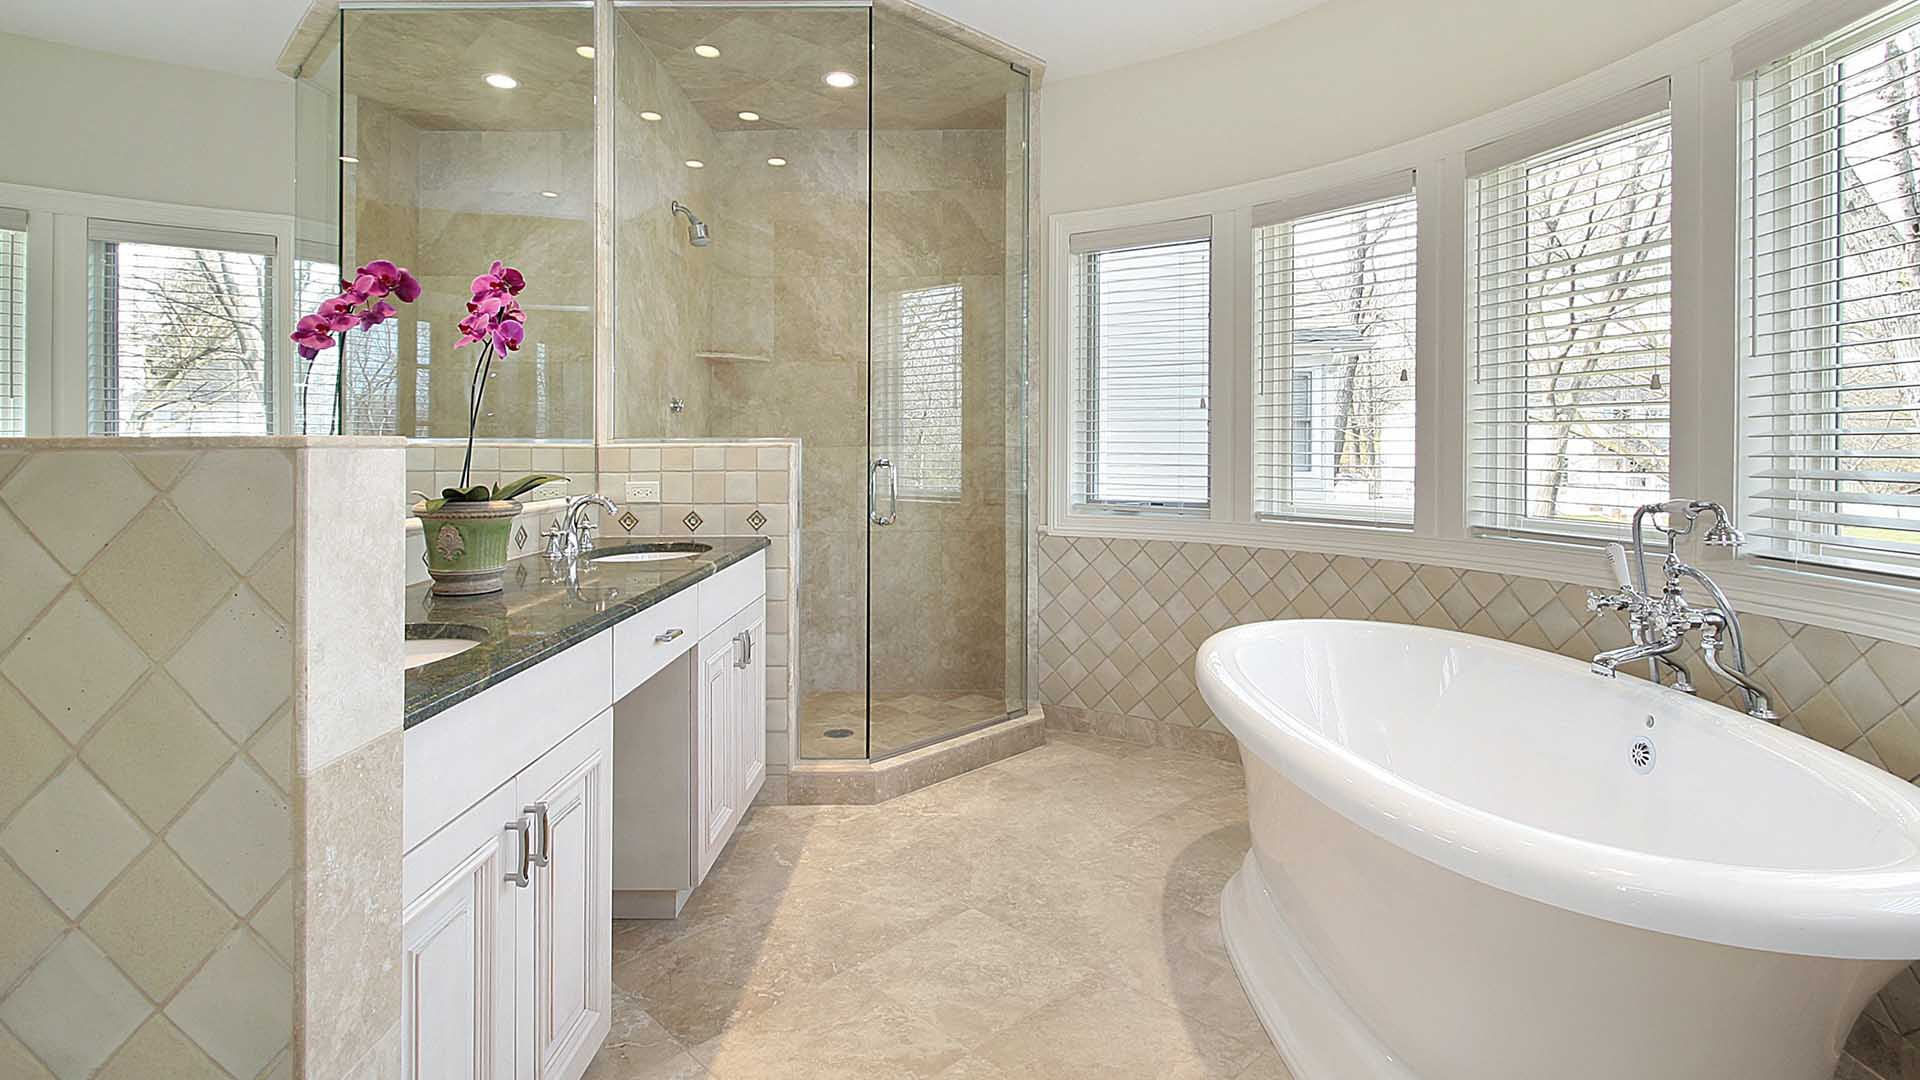 . Limitless Renovations   Bathroom Remodel   Renovations Atlanta